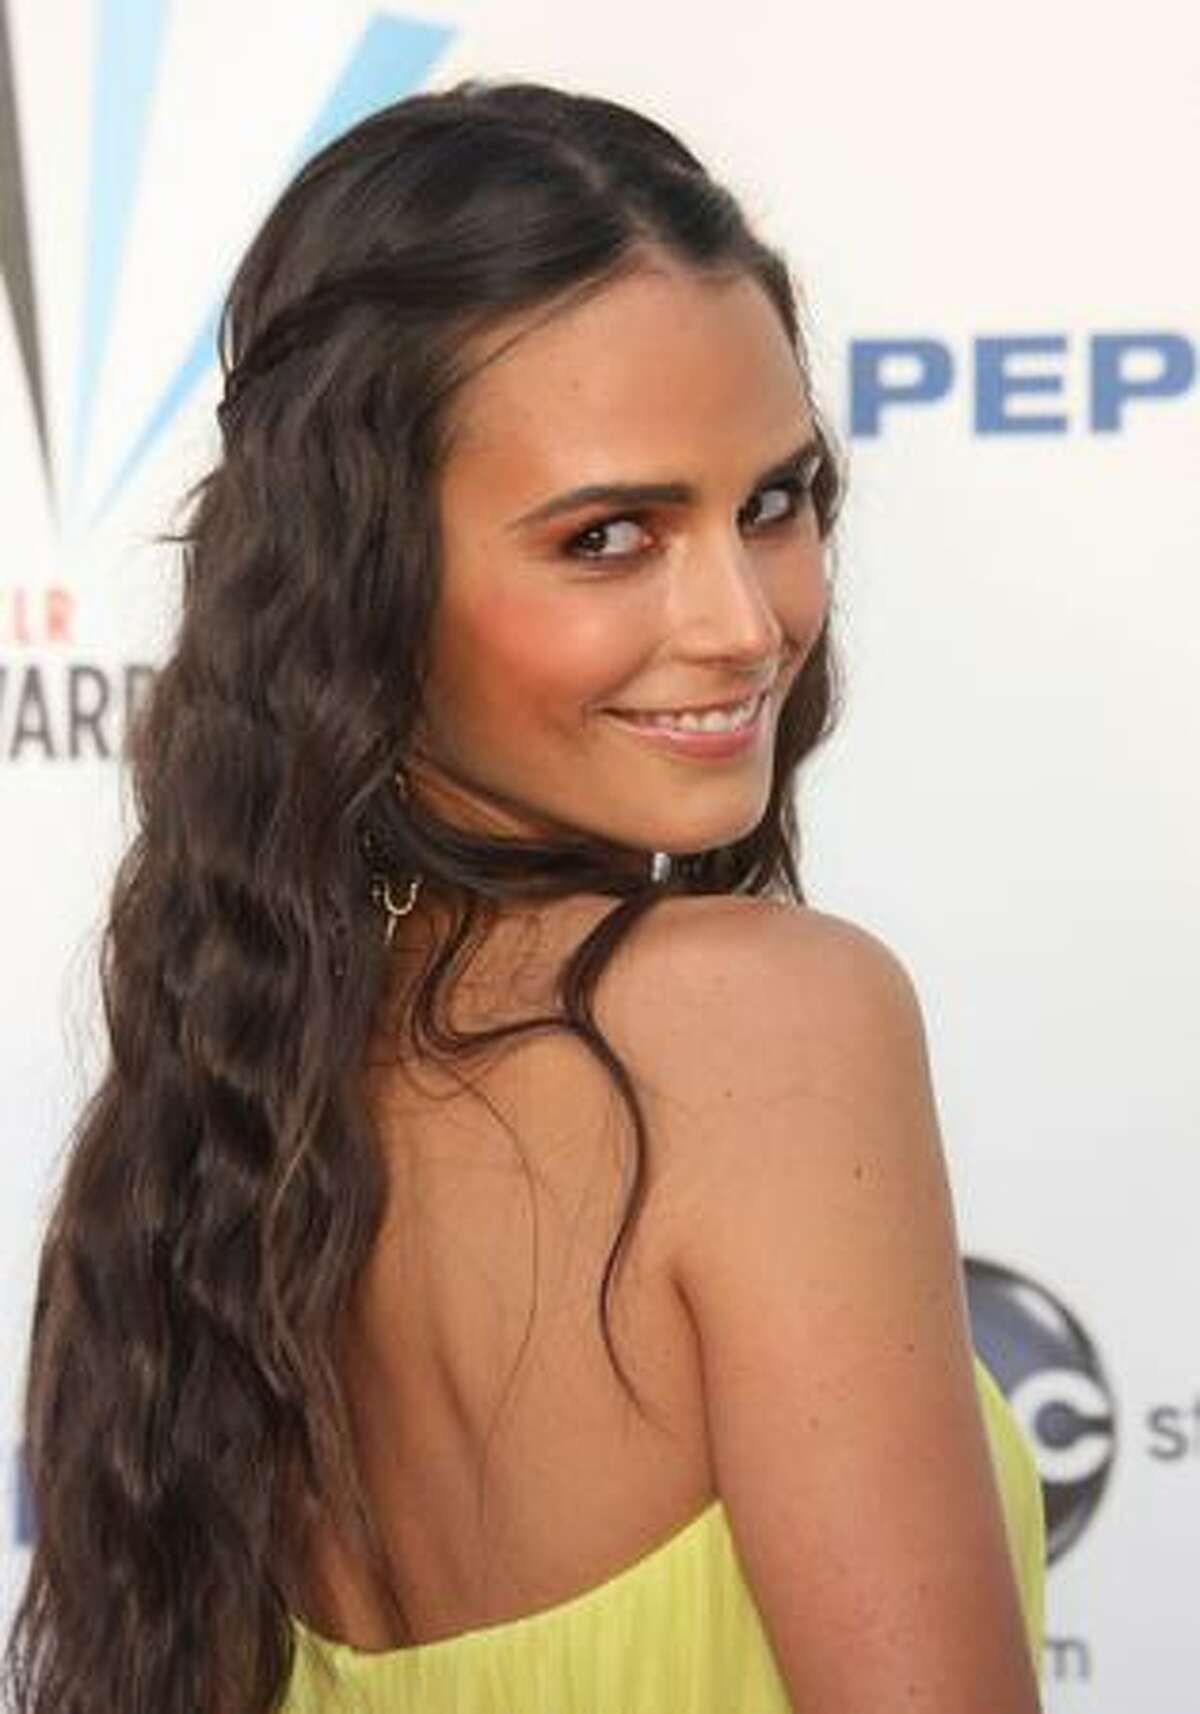 Actress Jordana Brewster arrives at the 2009 ALMA Awards held at Royce Hall in Los Angeles, California.